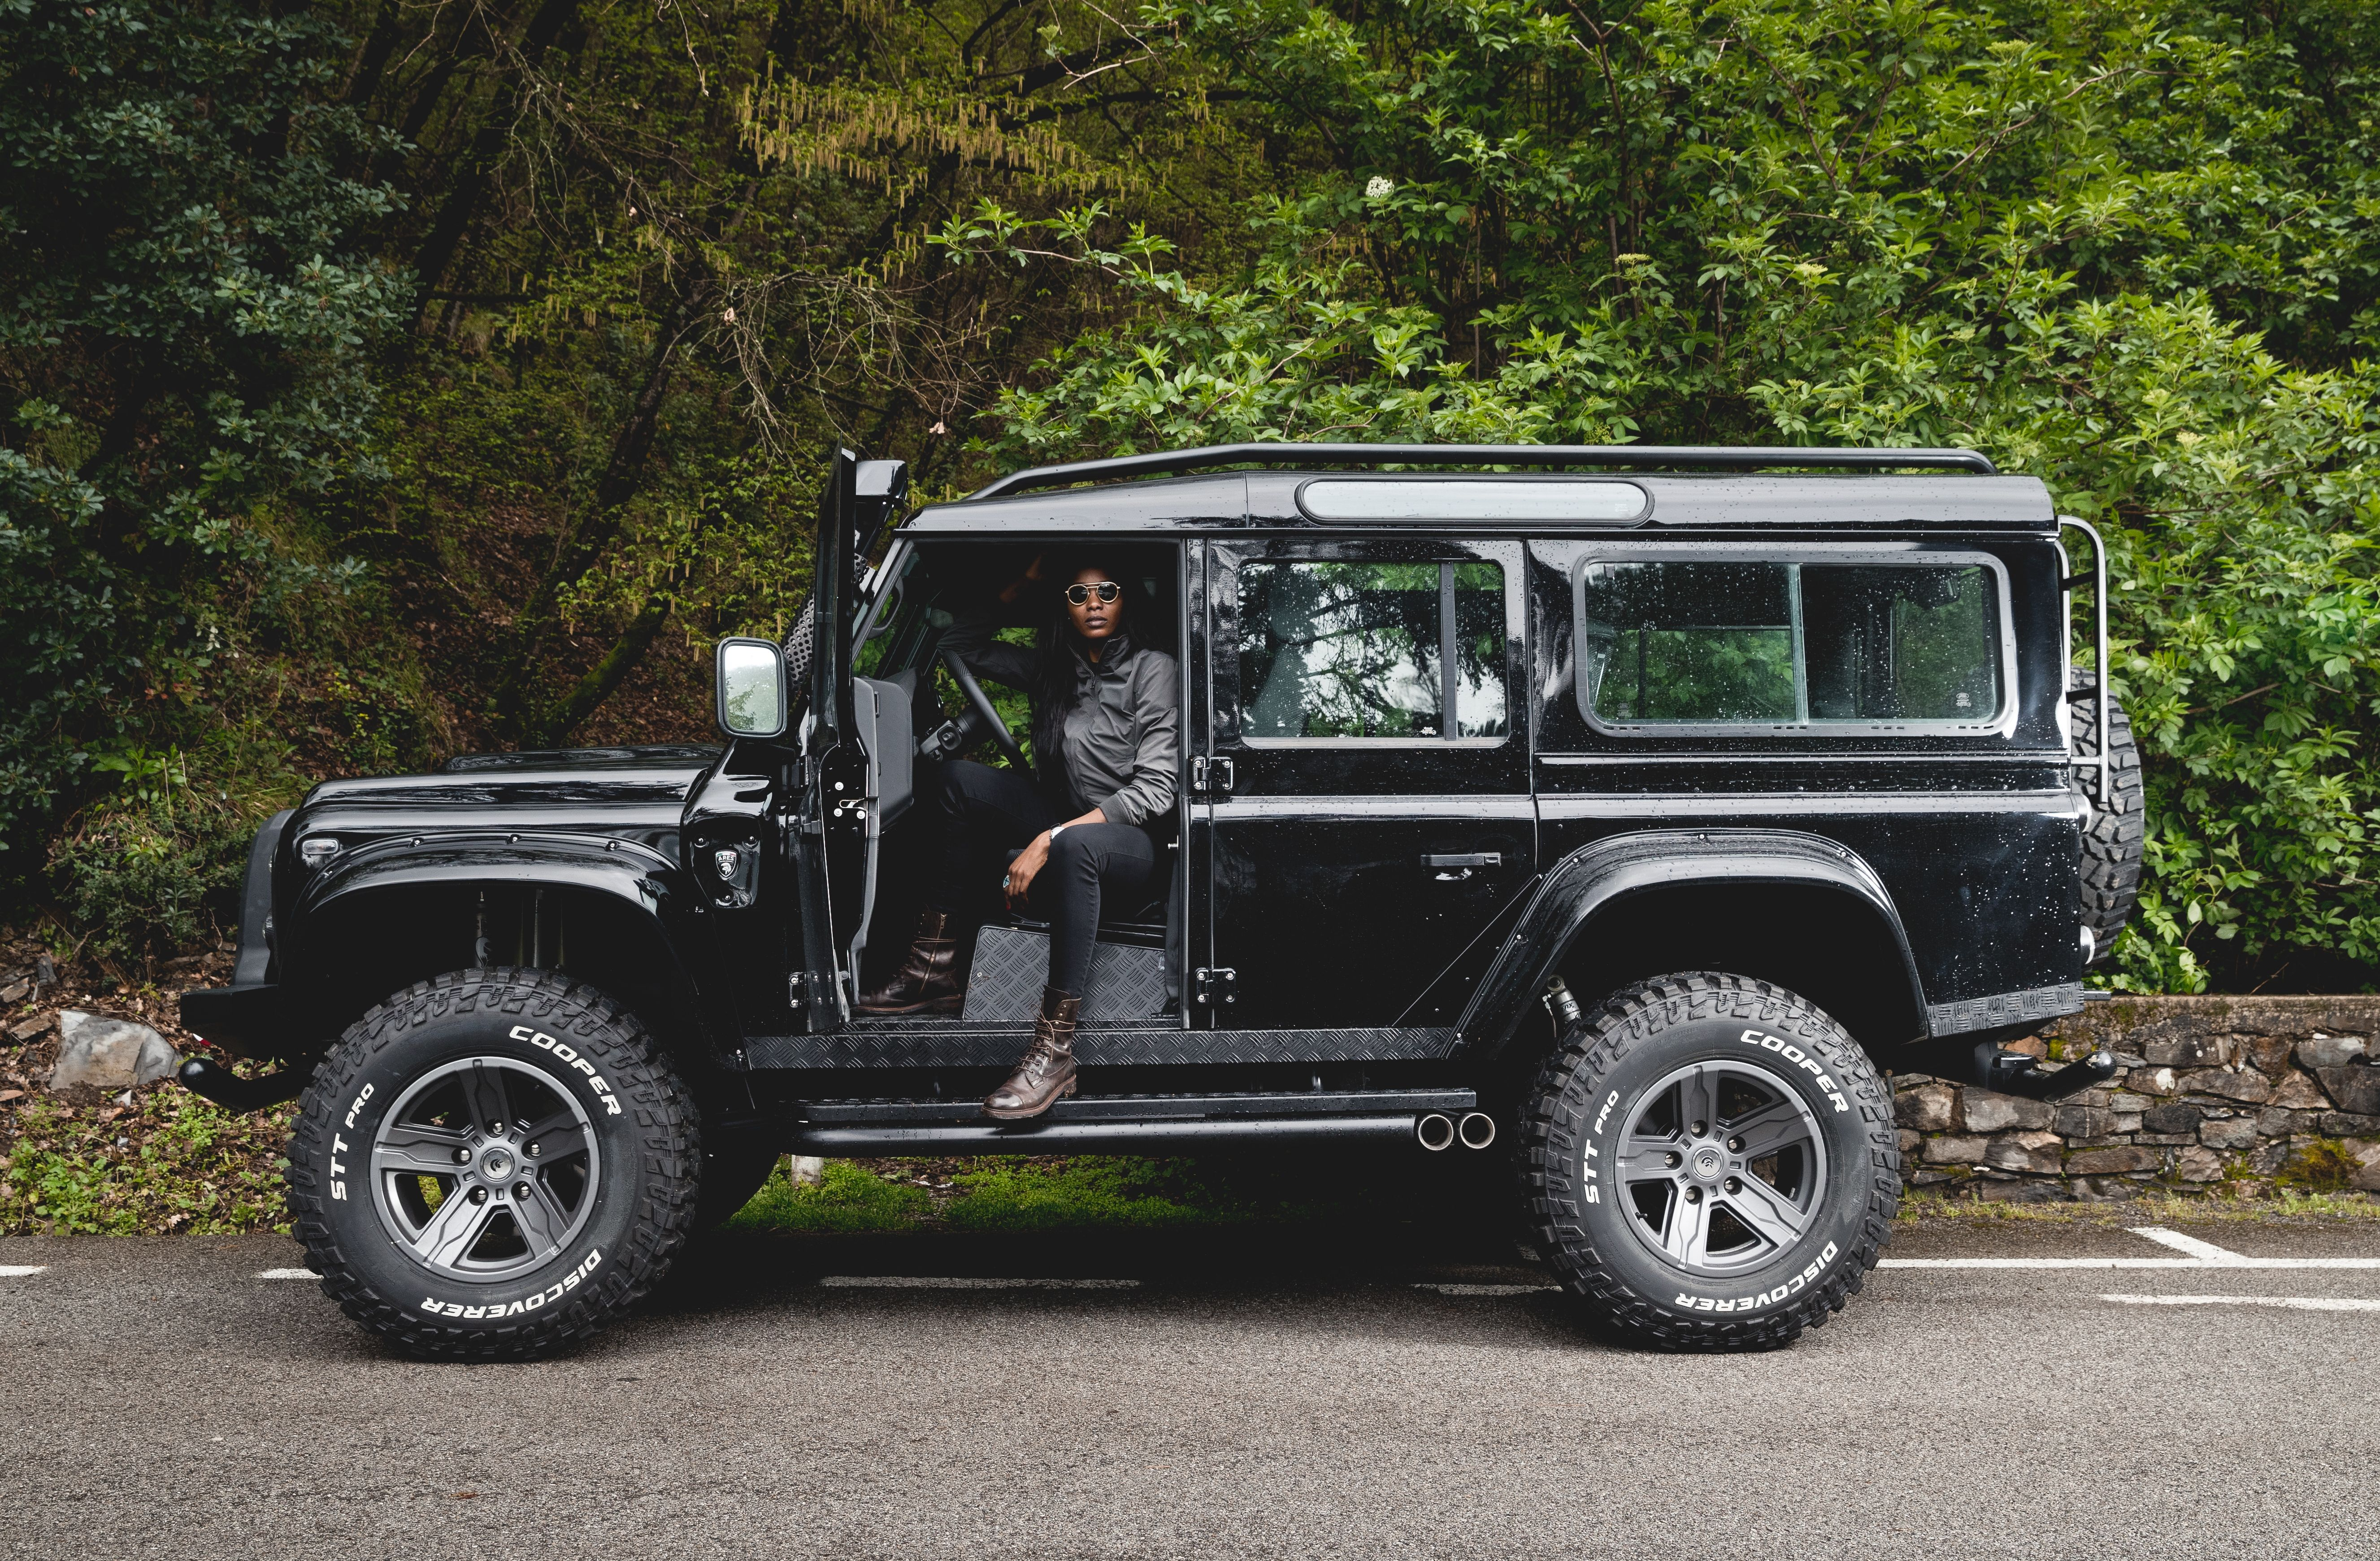 Pin By Luis Filho On Defender Lf In 2020 Land Rover Defender